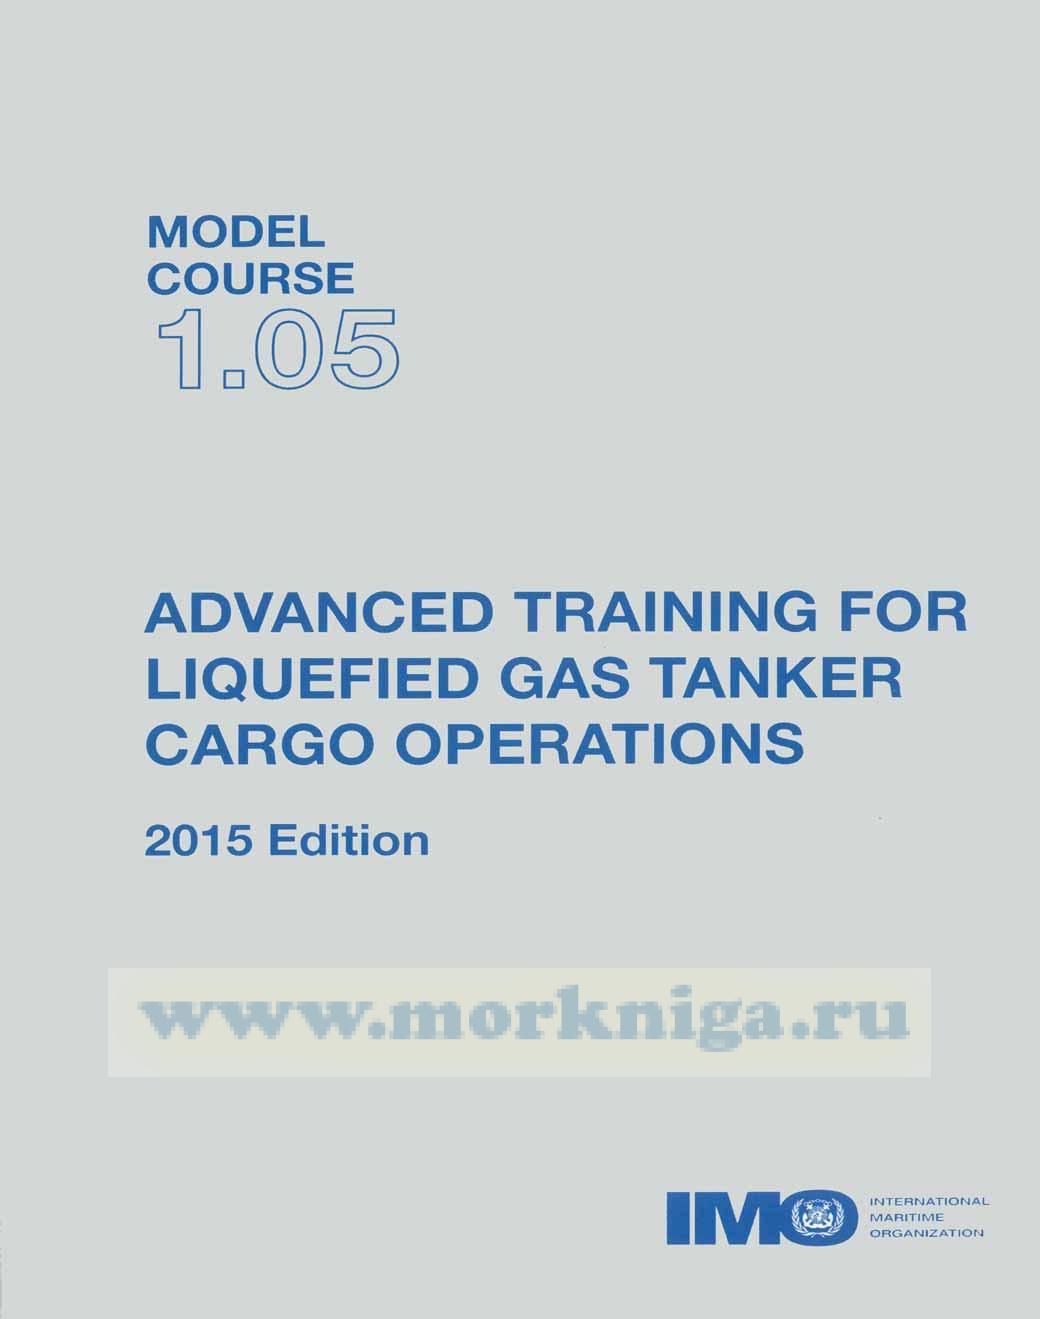 Advanced training for liquefied gas tanker cargo operations. Model course 1.05. 2015 Edition